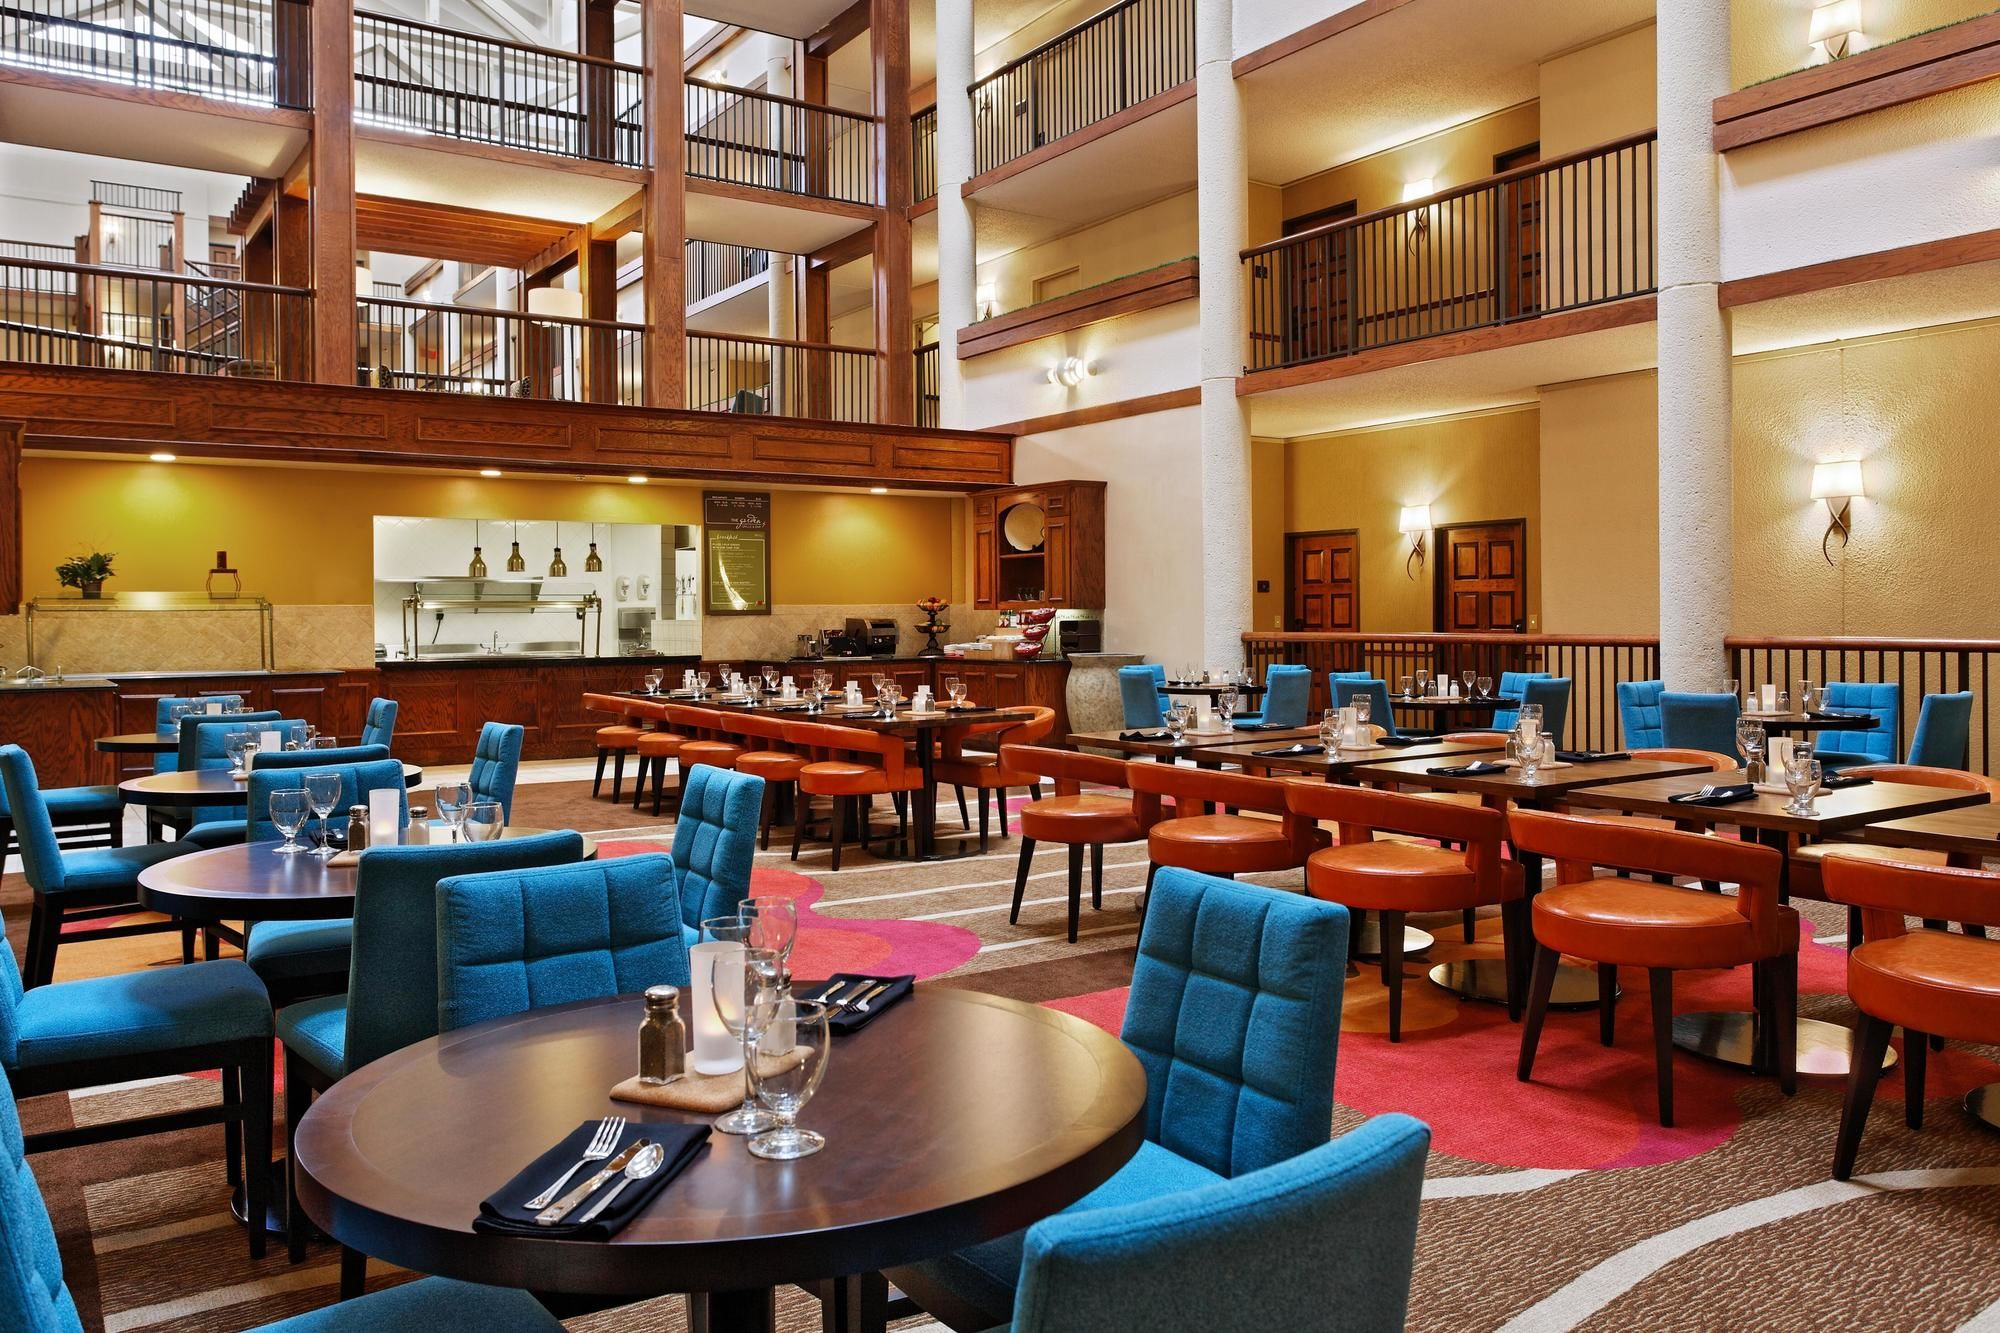 San antonio hotel coupons for san antonio texas - Hilton garden inn san antonio downtown ...